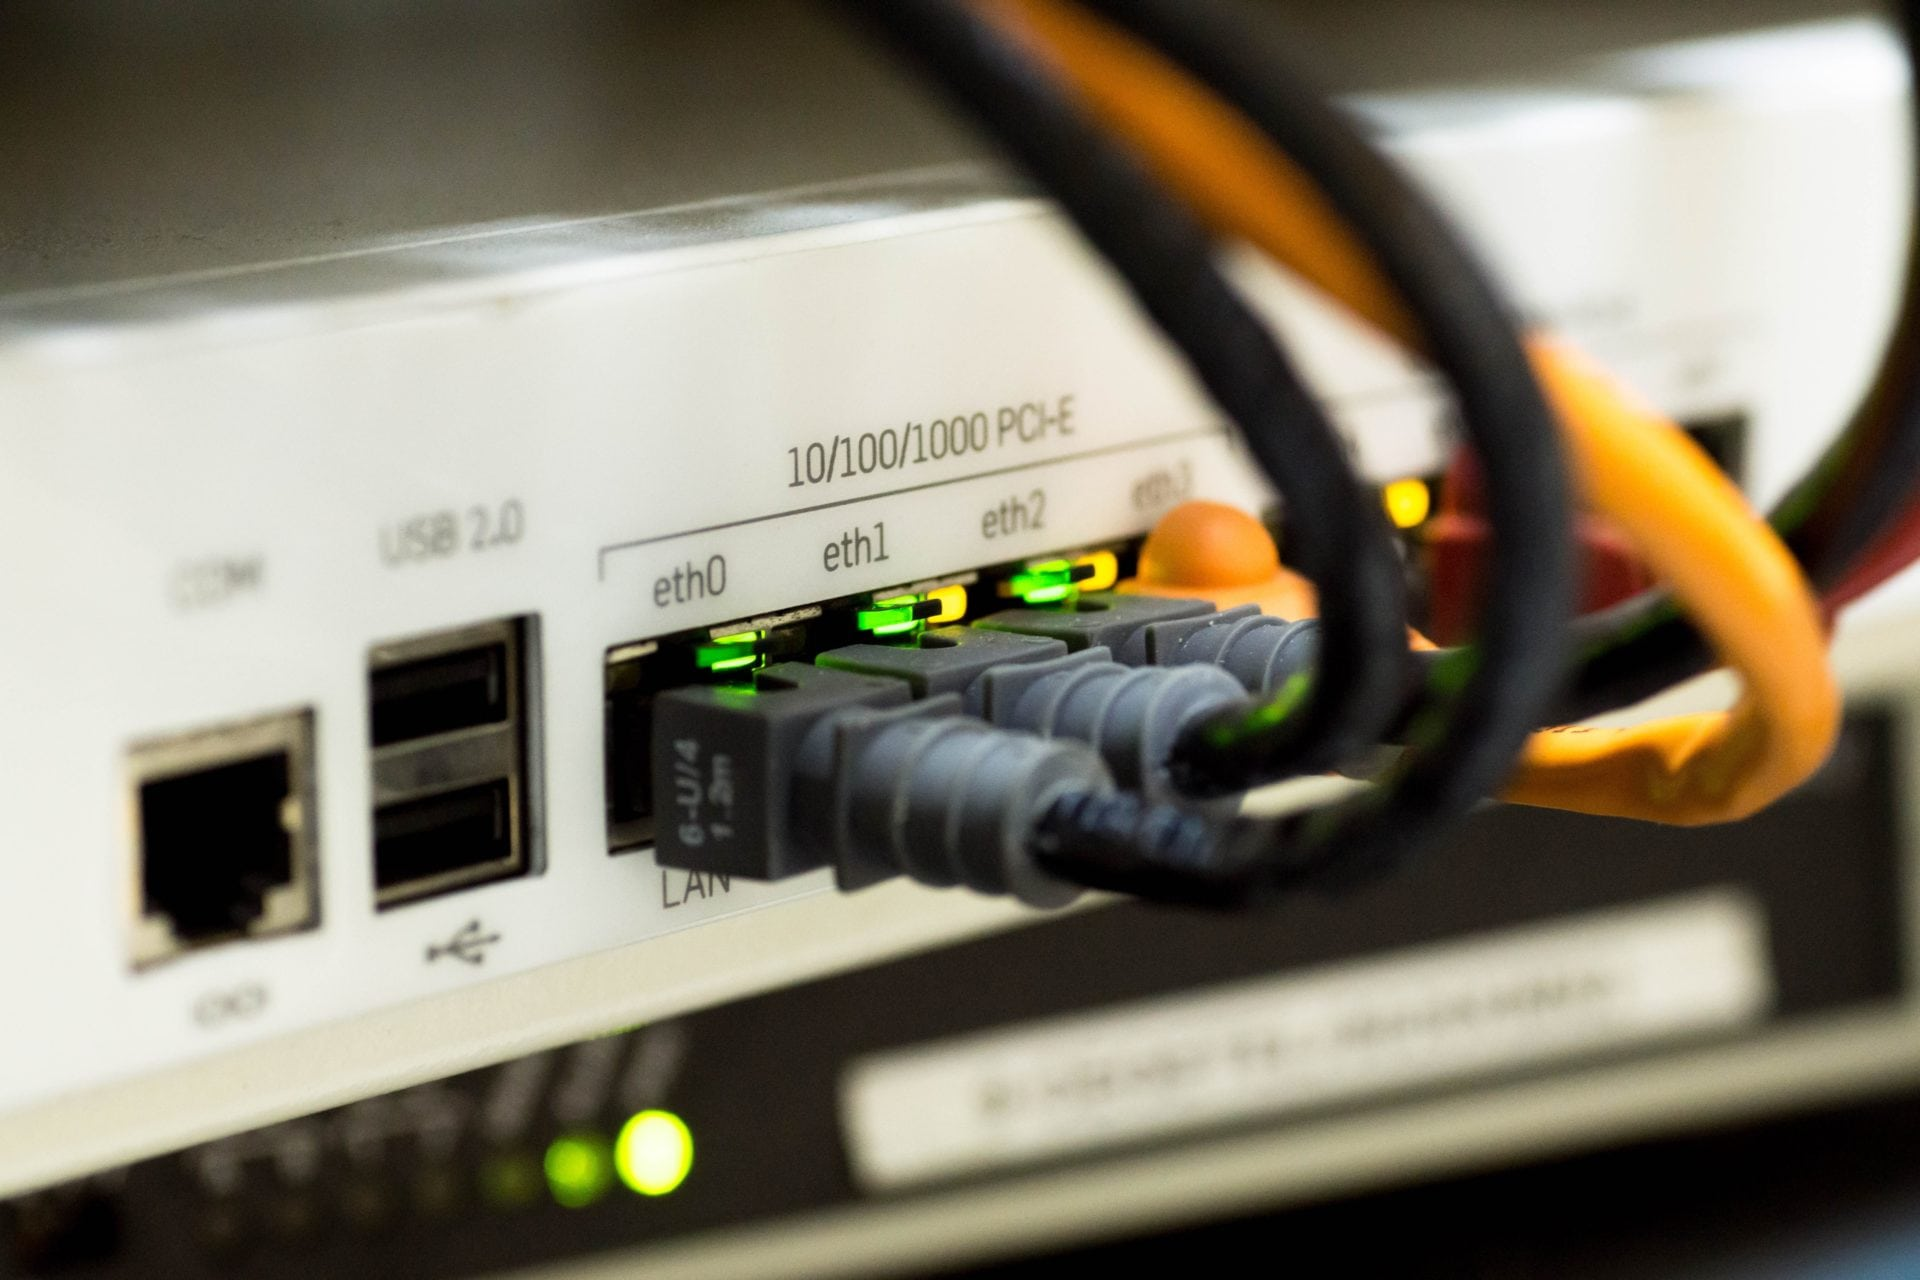 Equipments for LAN and data network wiring